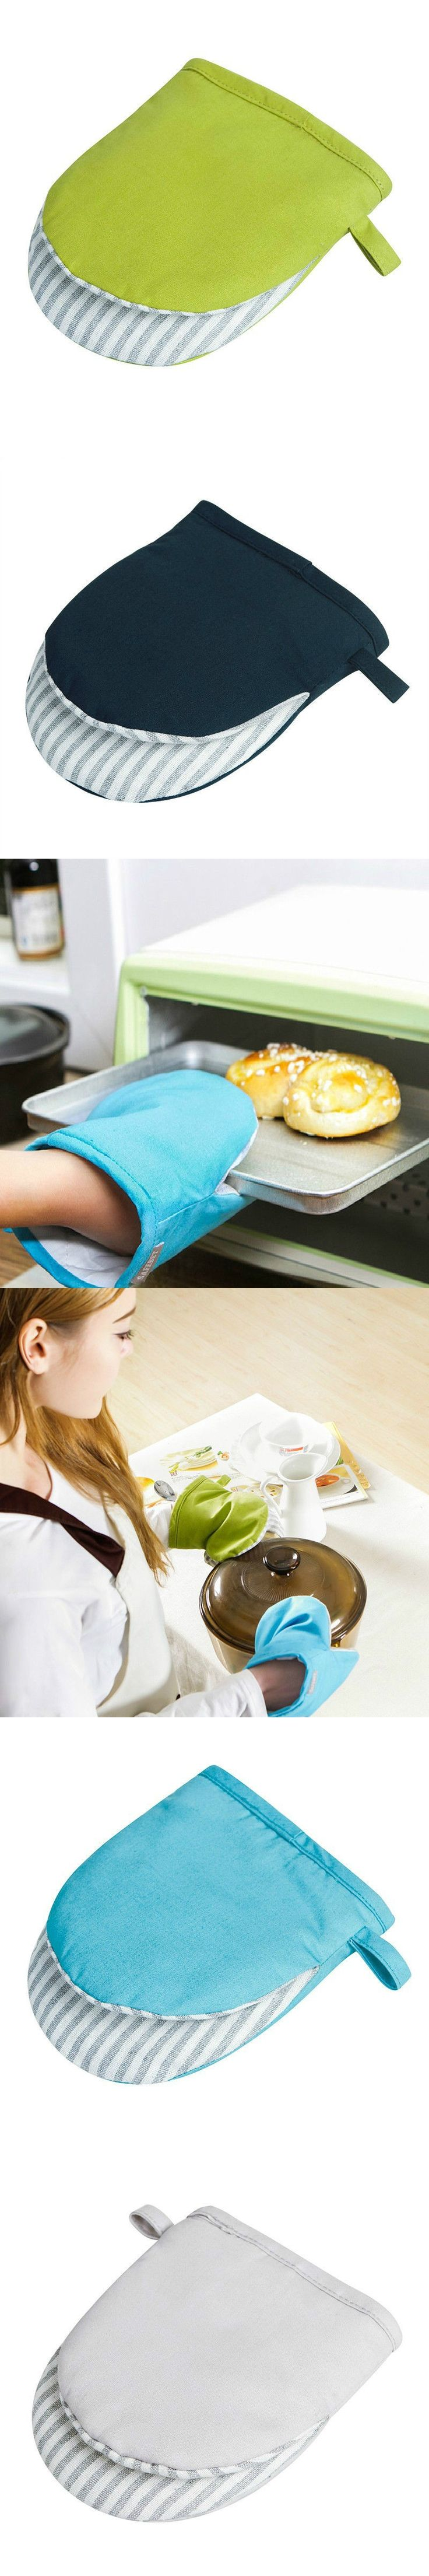 Household Gloves High temperature oven microwave oven heat insulation protective gloves blue dark blue gray green